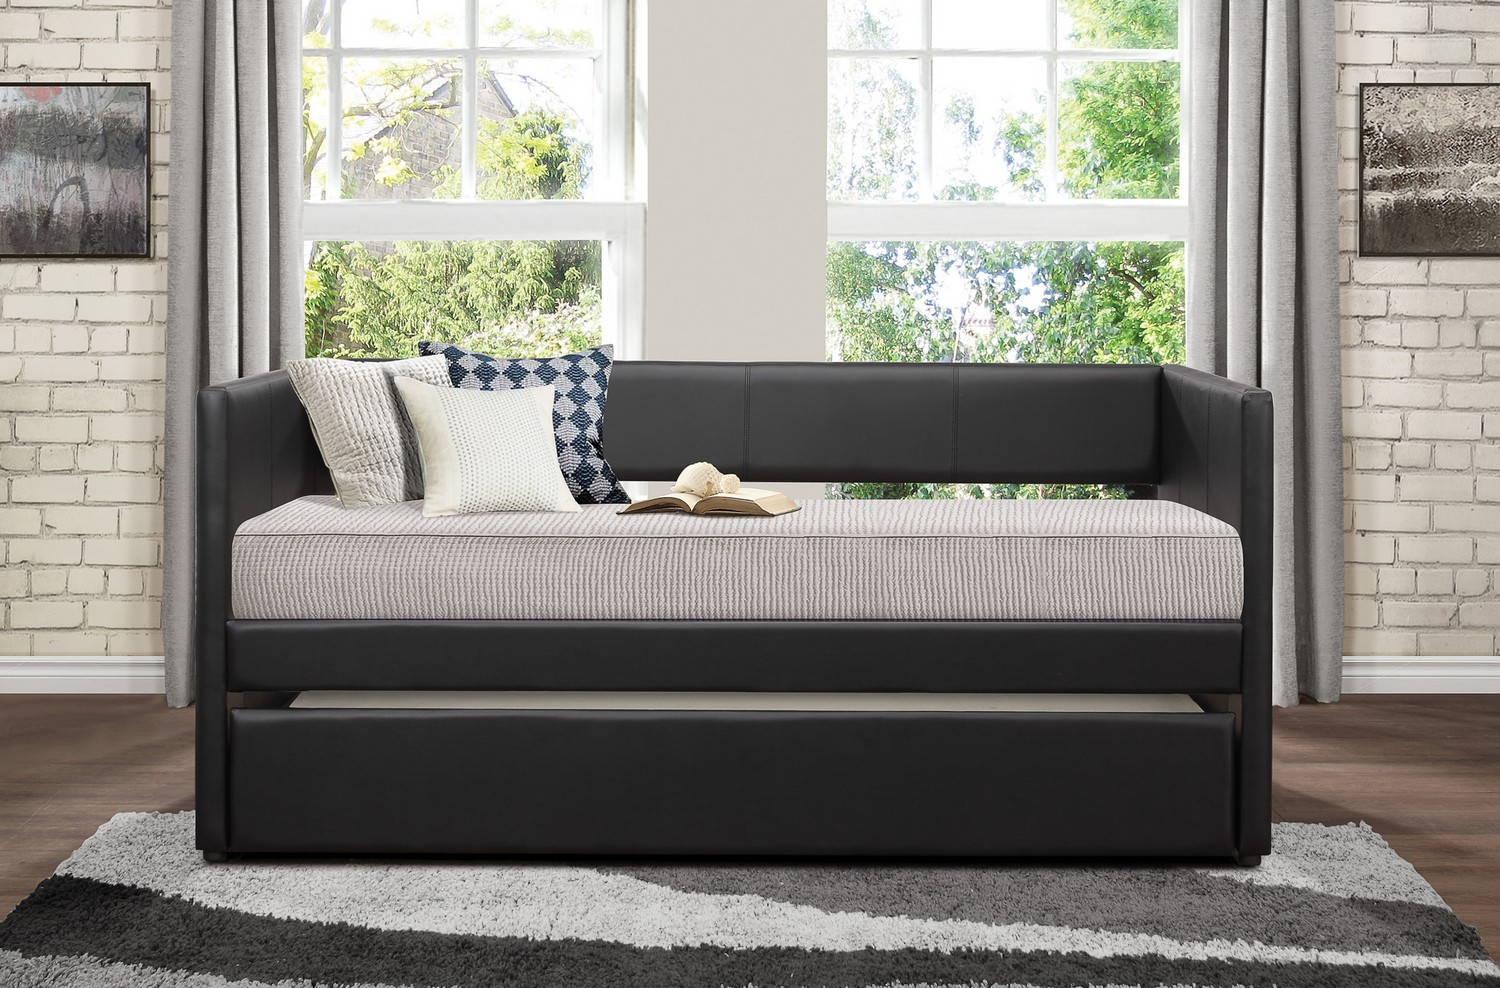 Homelegance Andra Daybed with Trundle - Black